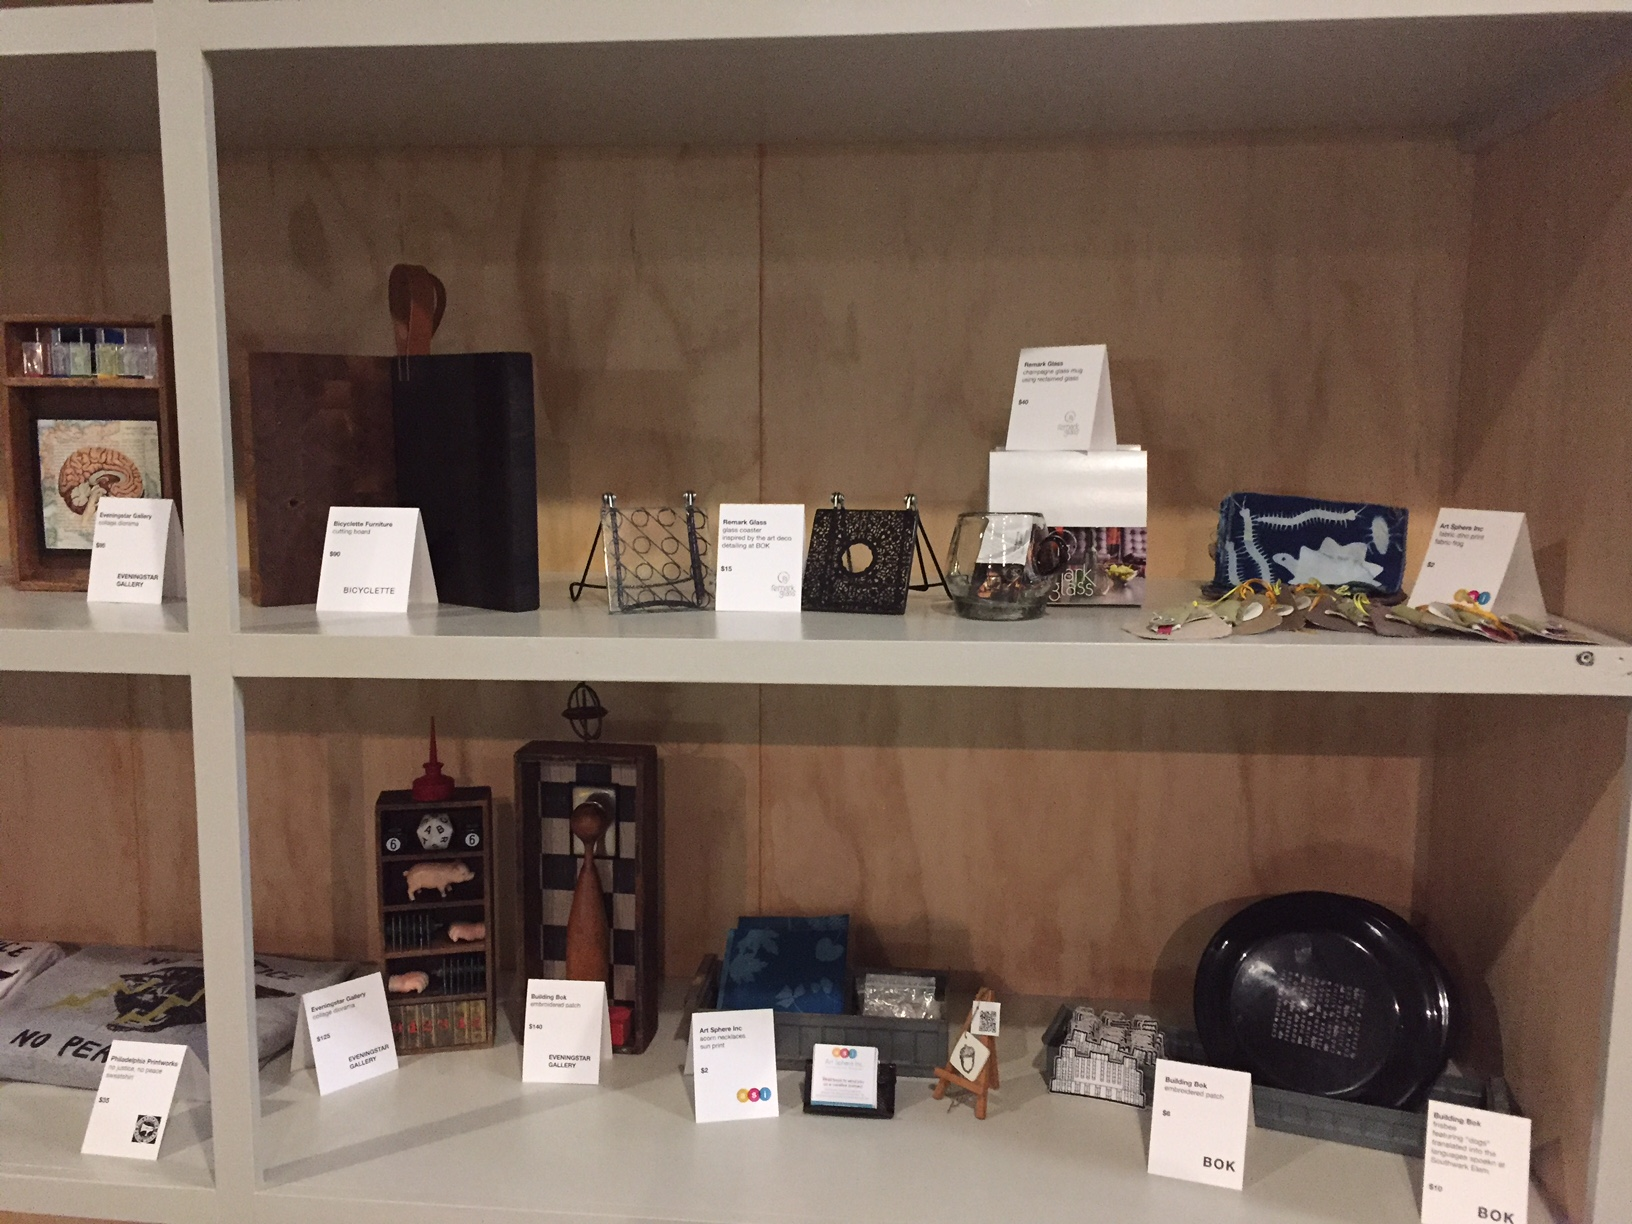 ASI Items for Sale at Bok Cafe